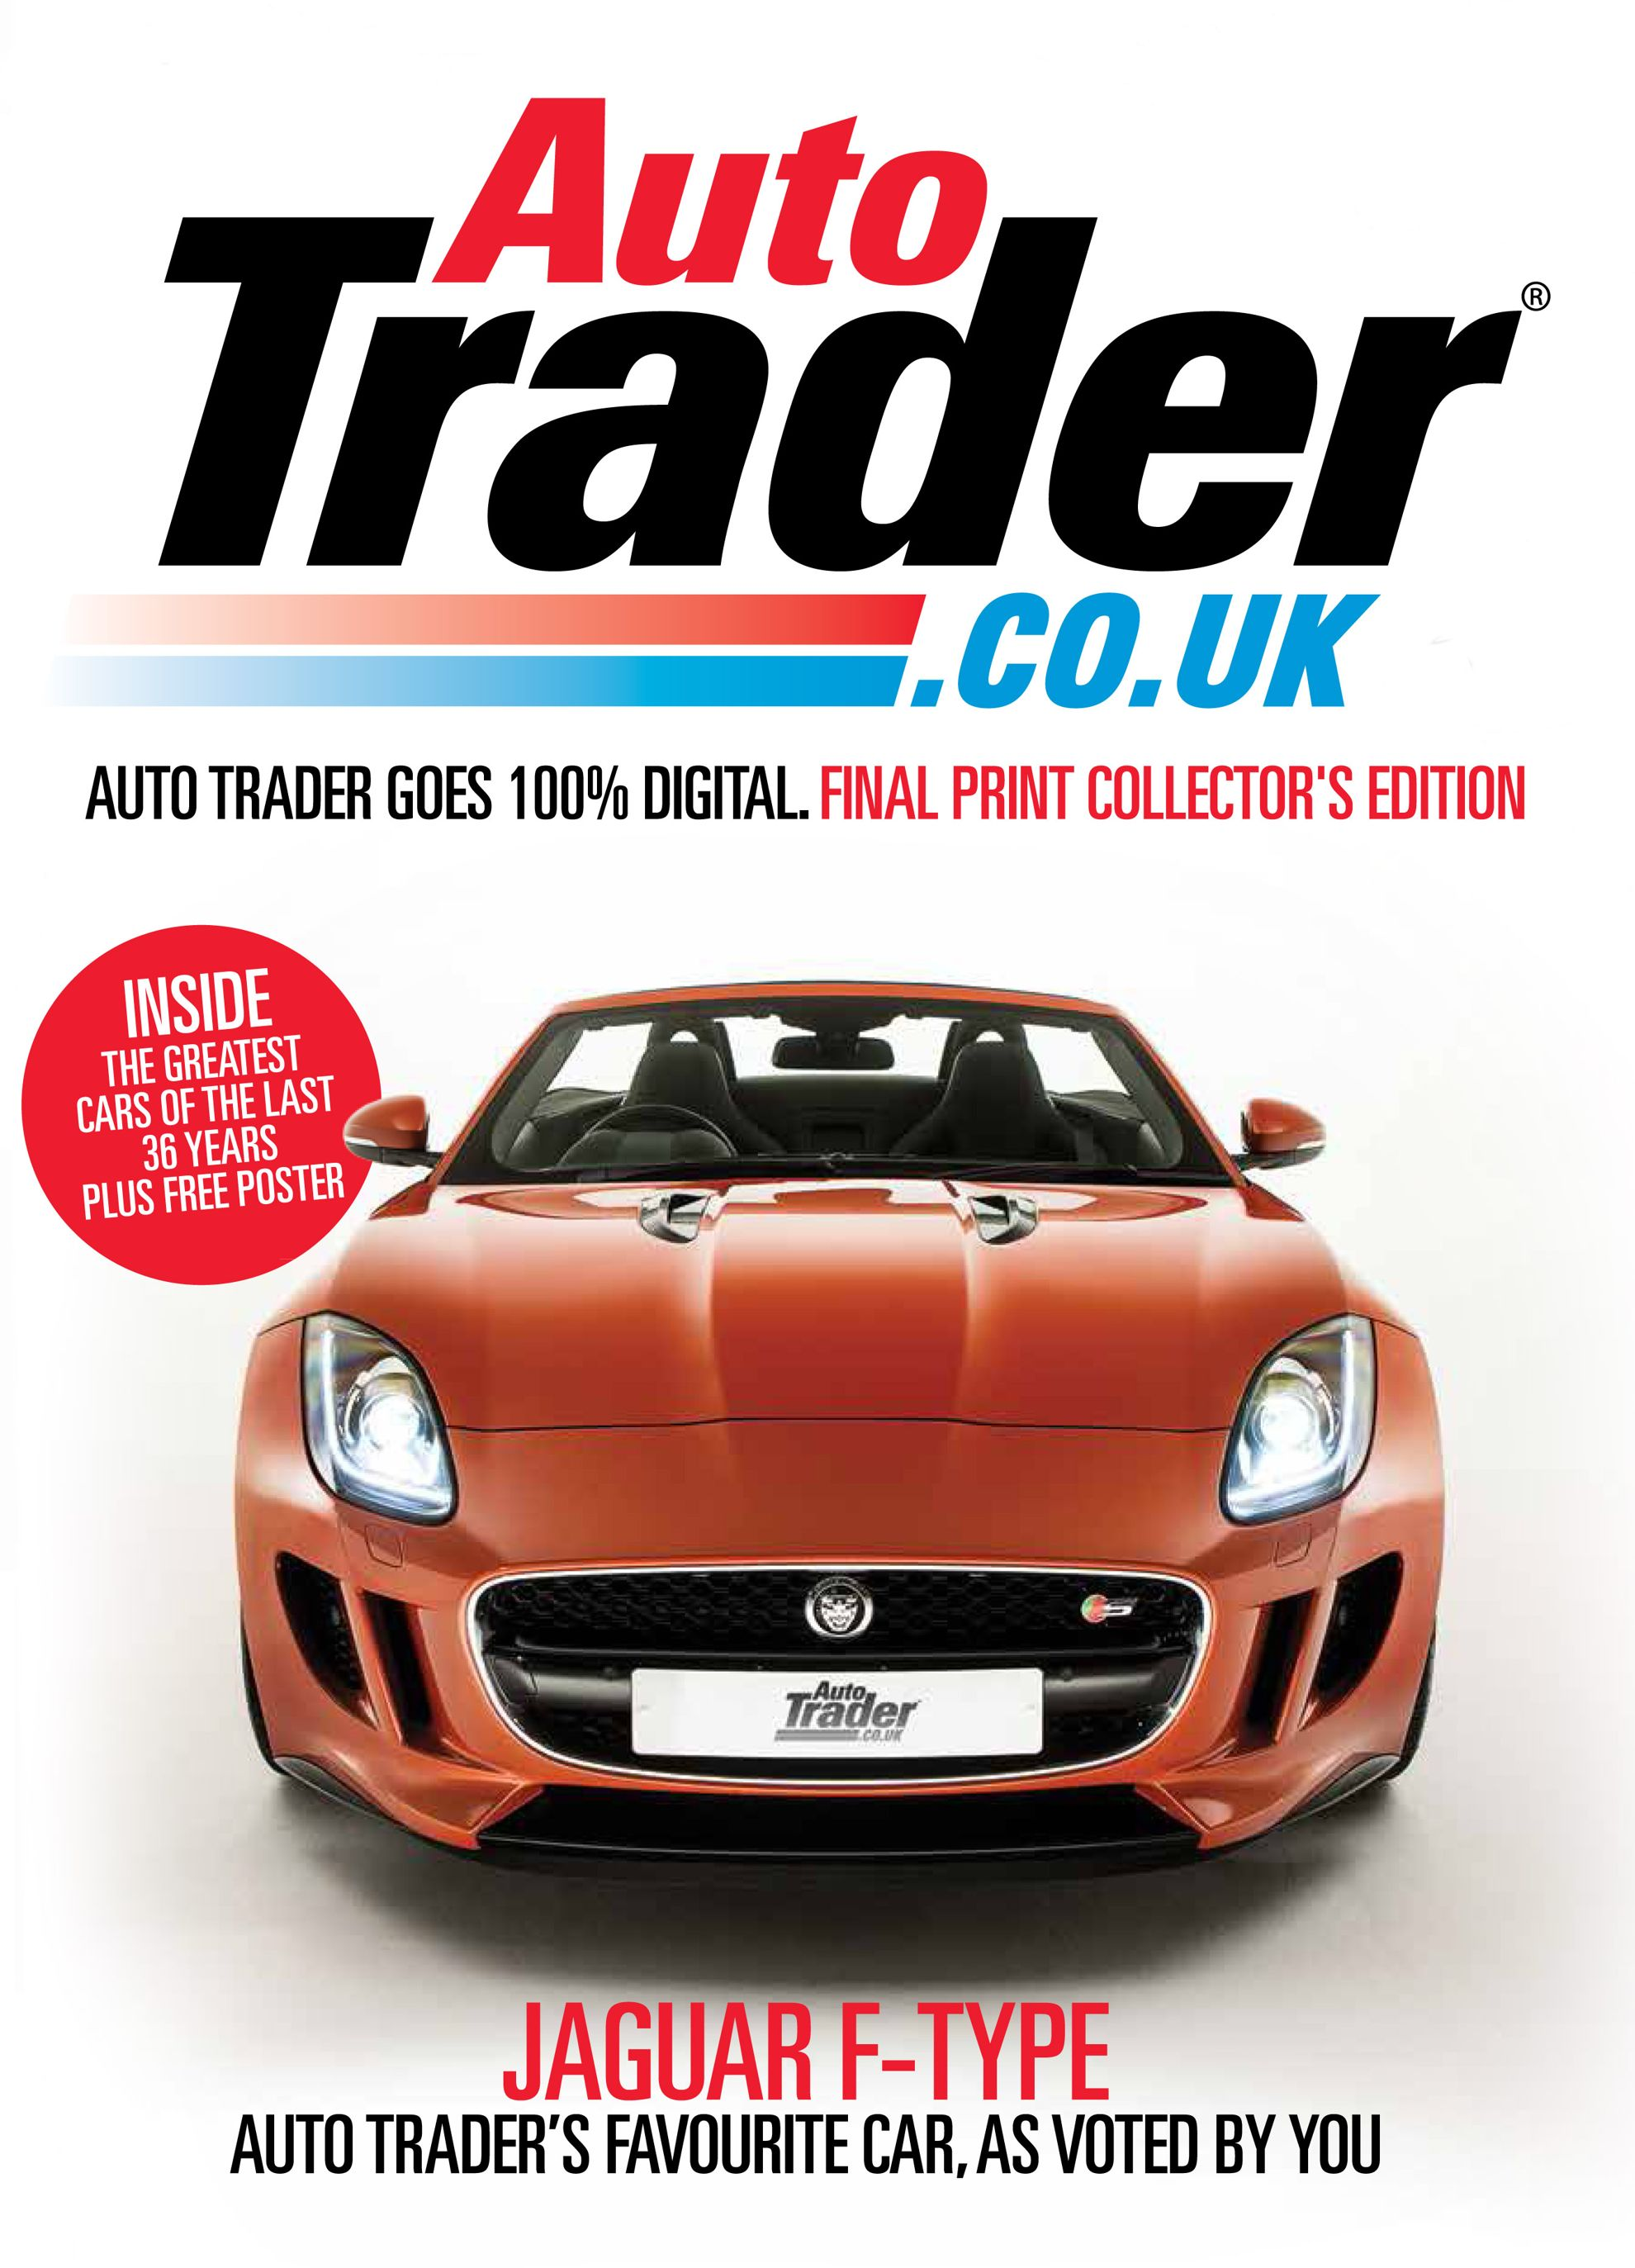 the new jaguar f type has topped a reader survey to earn pride of place on the cover of the last ever print issue of auto trader magazine